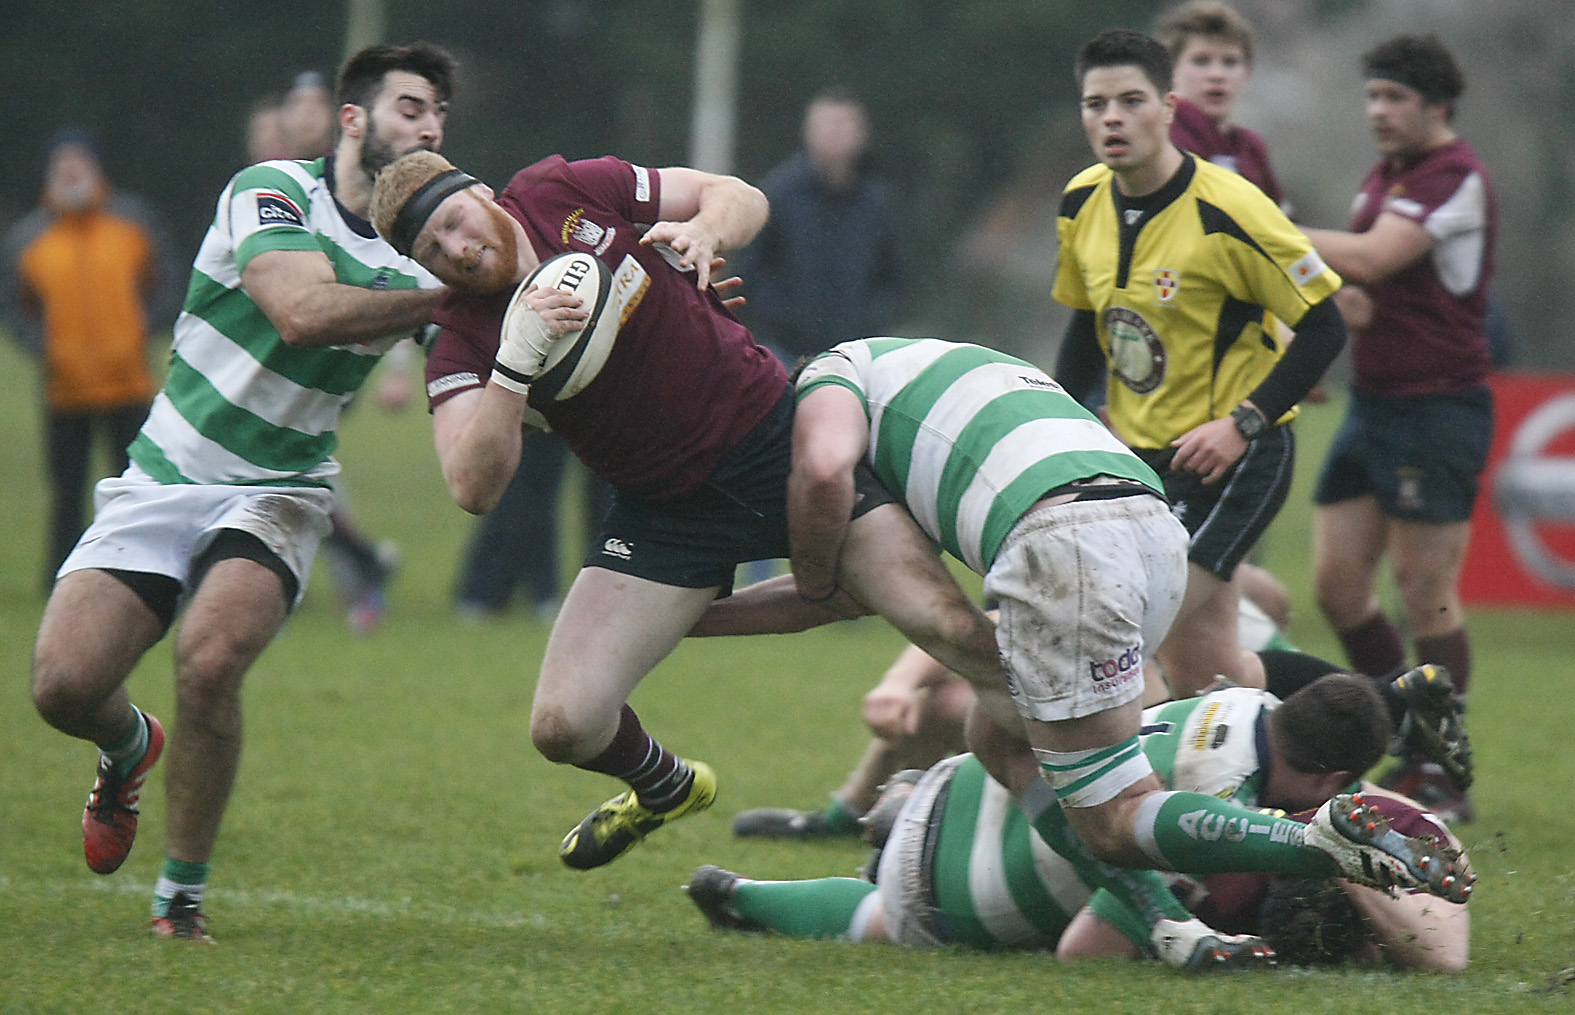 Skins' James Carleton is caught by Neil Brown and Johnny Sproule during the defeat to Omagh.